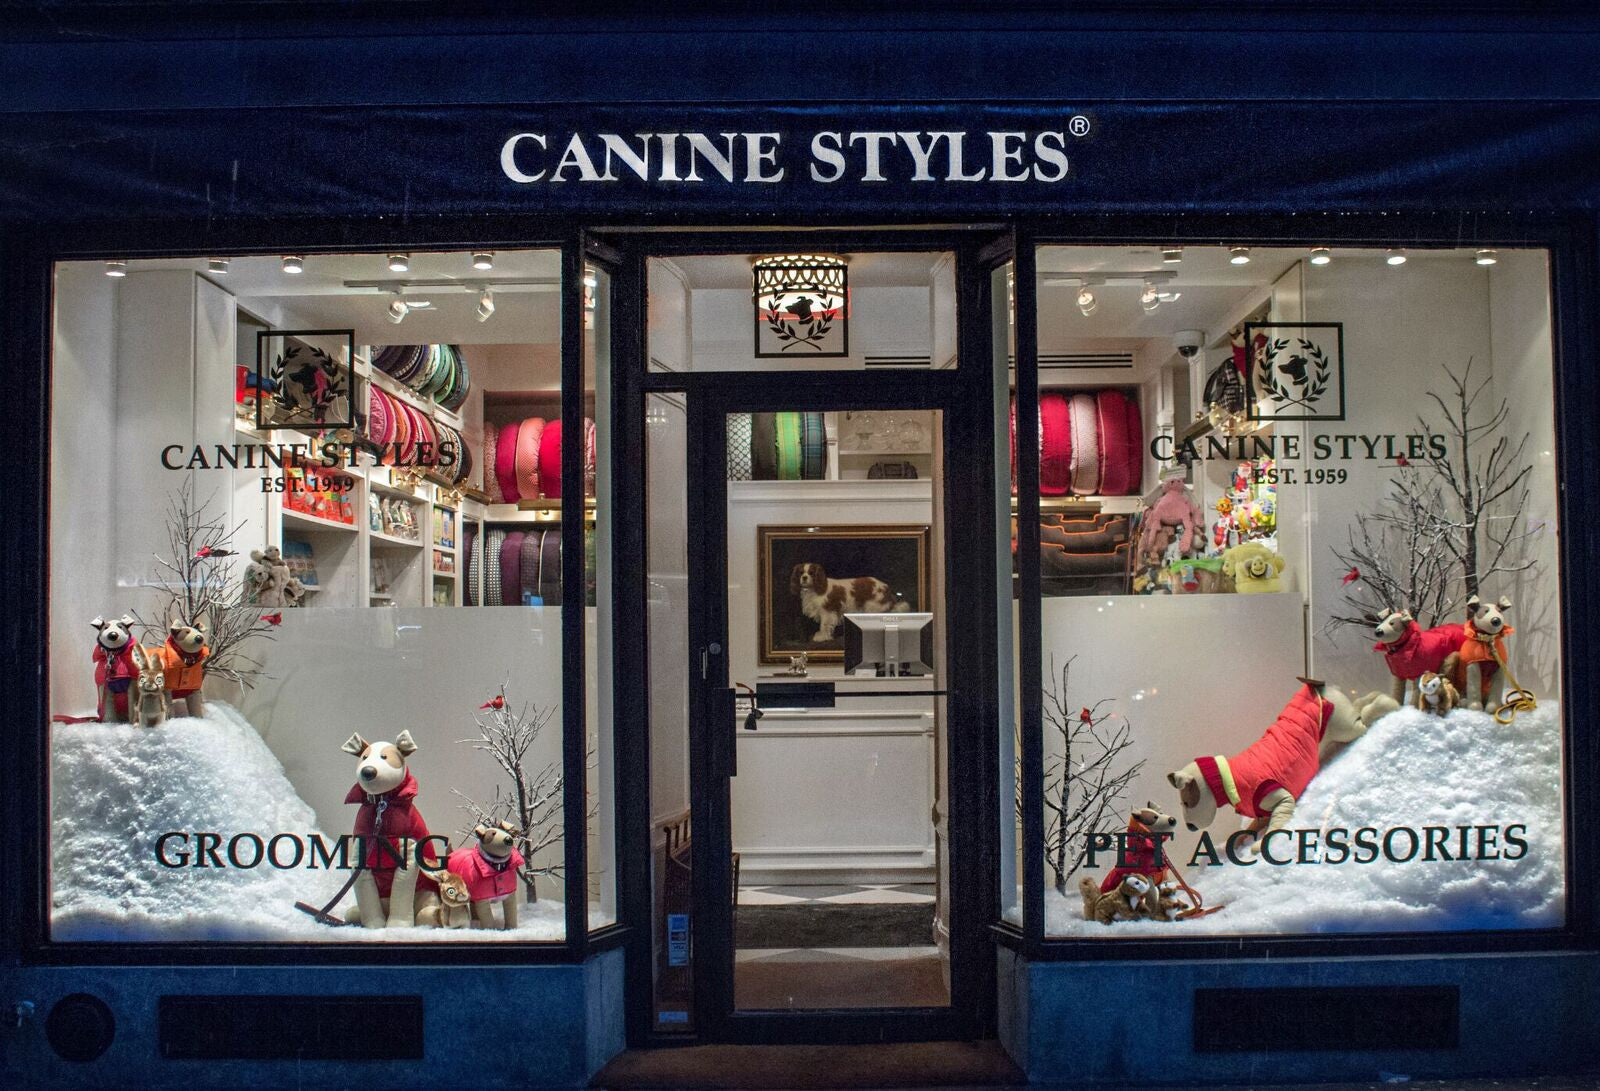 CANINE STYLES OPEN FLAGSHIP STORE ON THE UPPER EAST SIDE